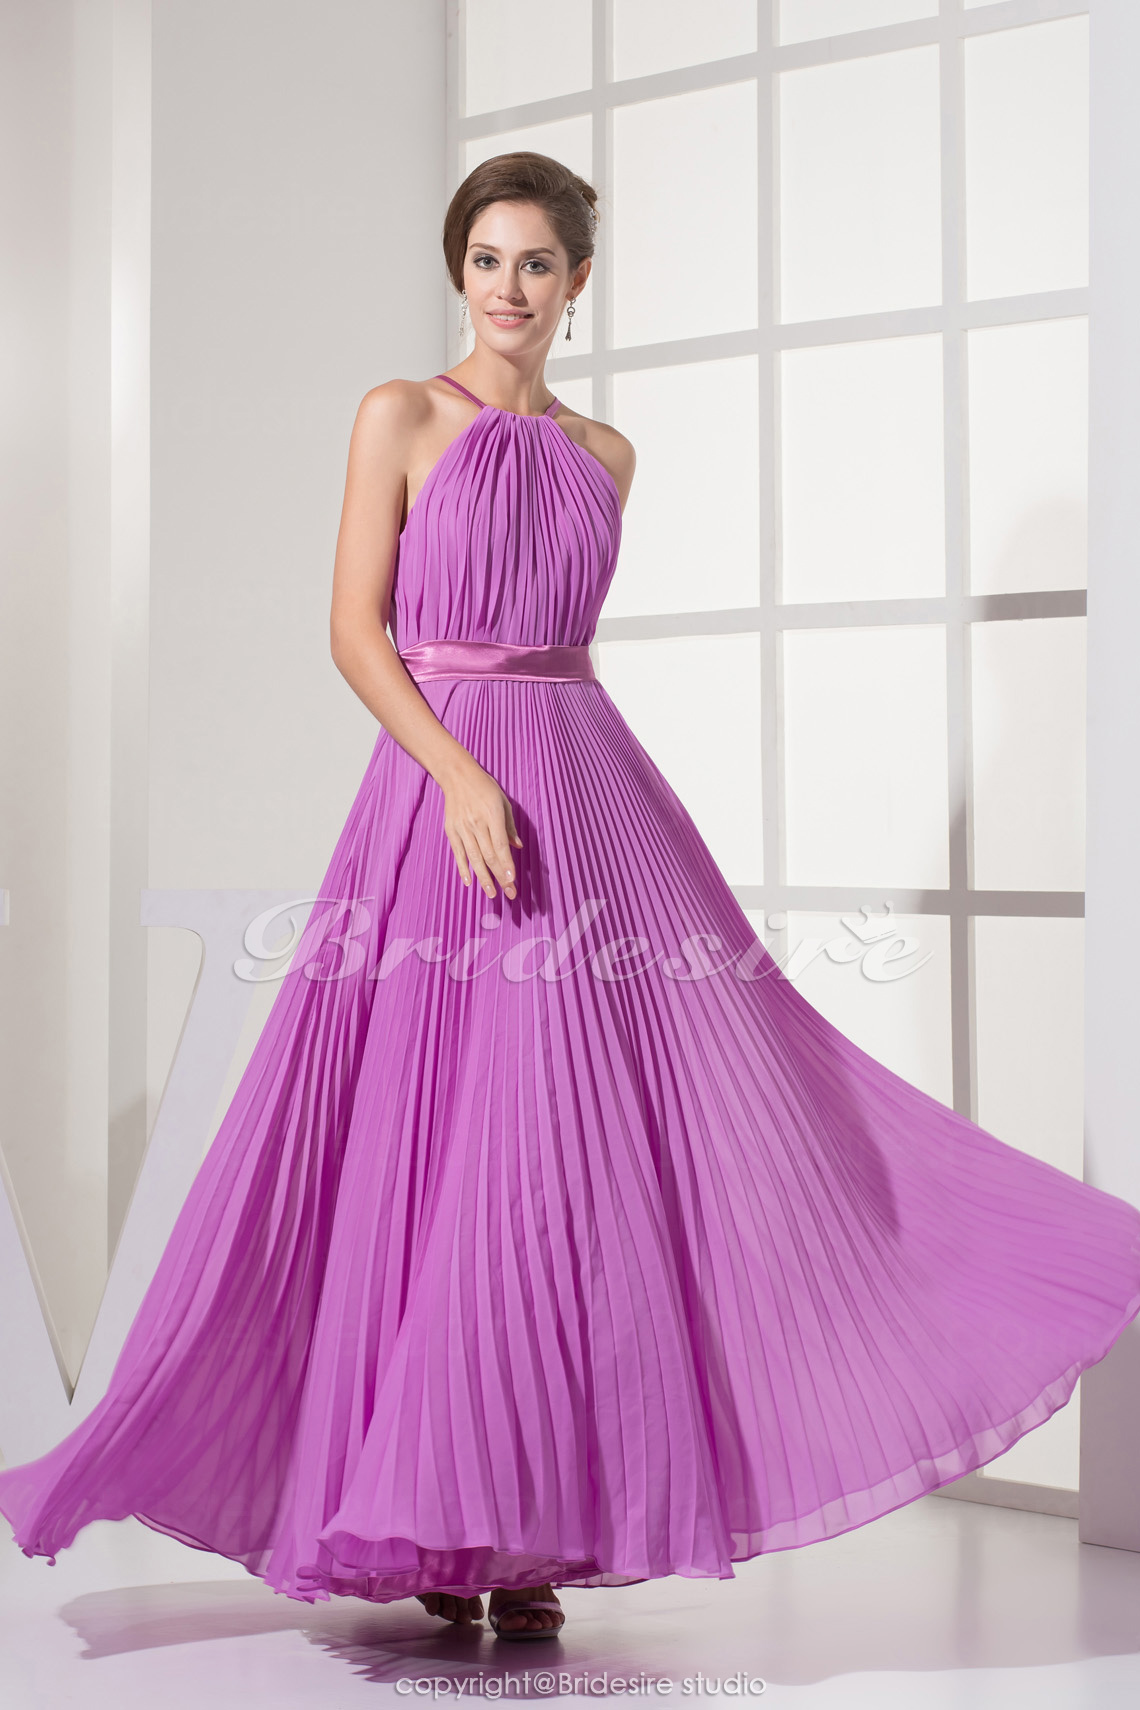 Sheath/Column Halter Floor-length Sleeveless Chiffon Stretch Satin Dress